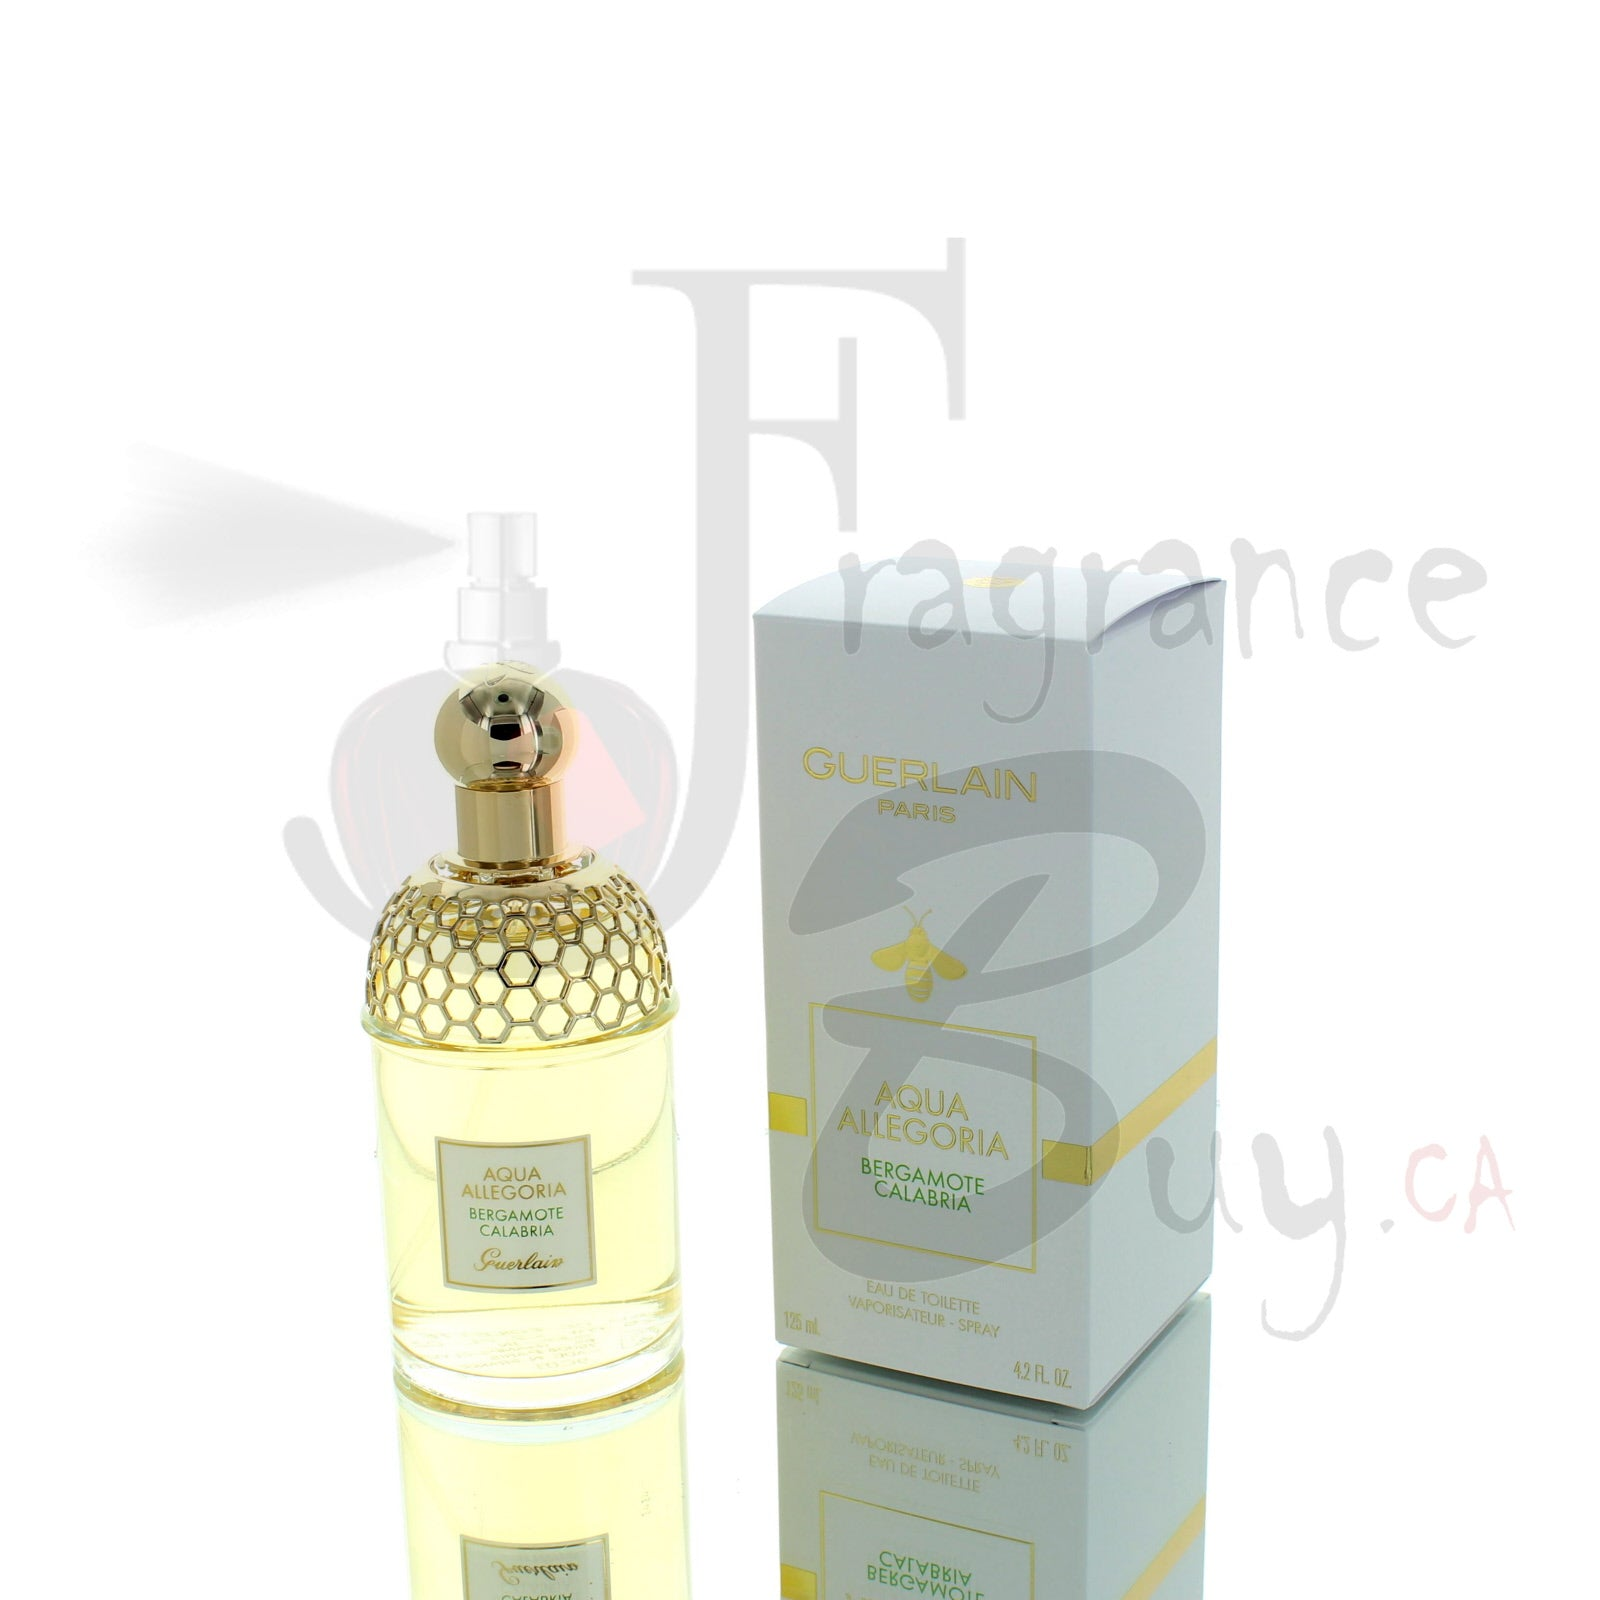 Guerlain Aqua Allegoria Bergamote For Man/Woman